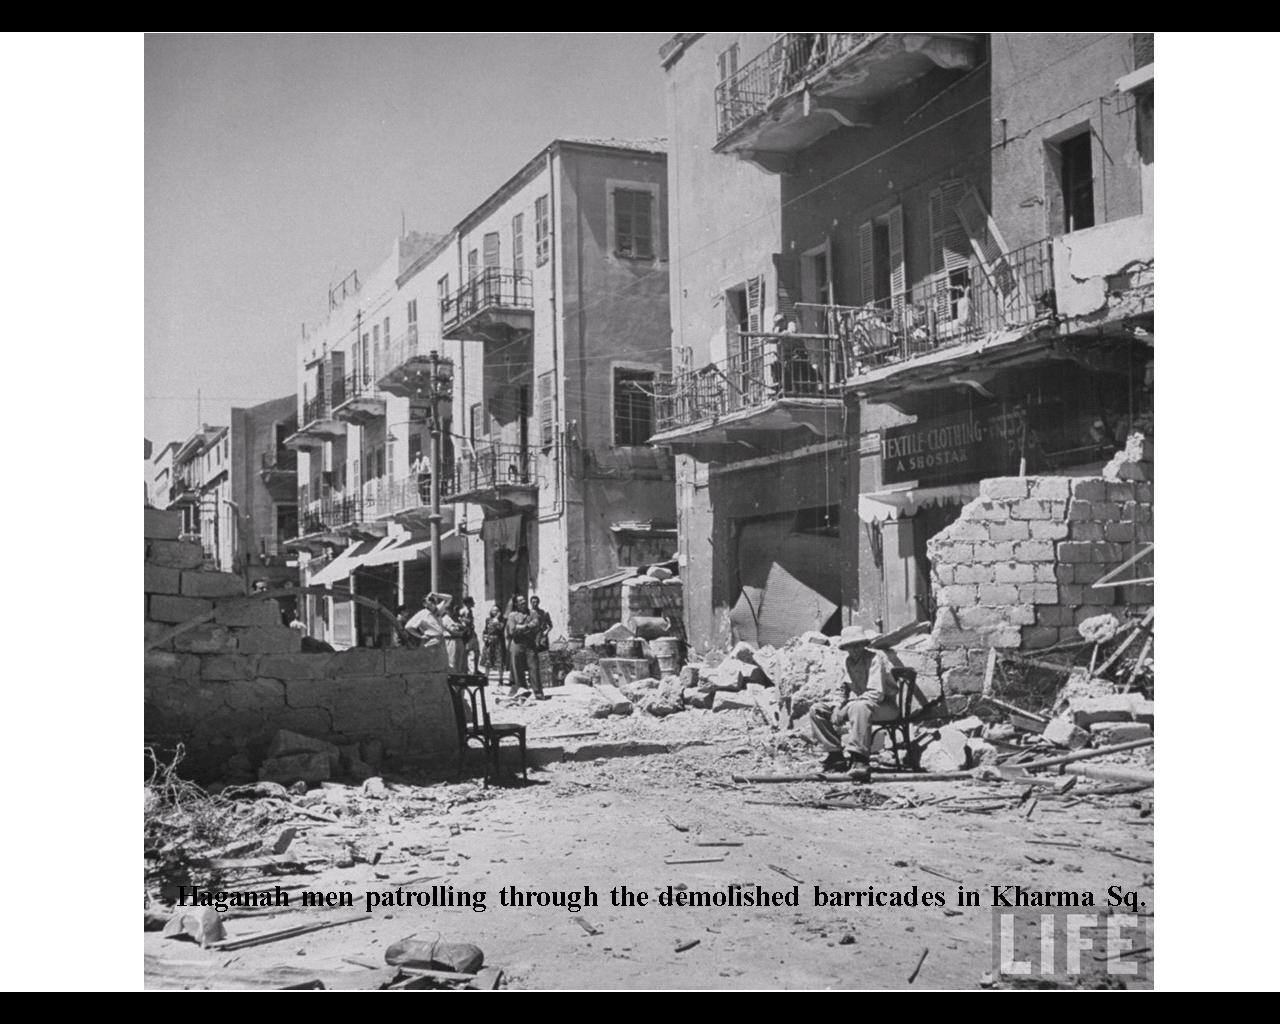 Haifa - حيفا : Kharma Sq. soon after Haifa's occupation, April 1948